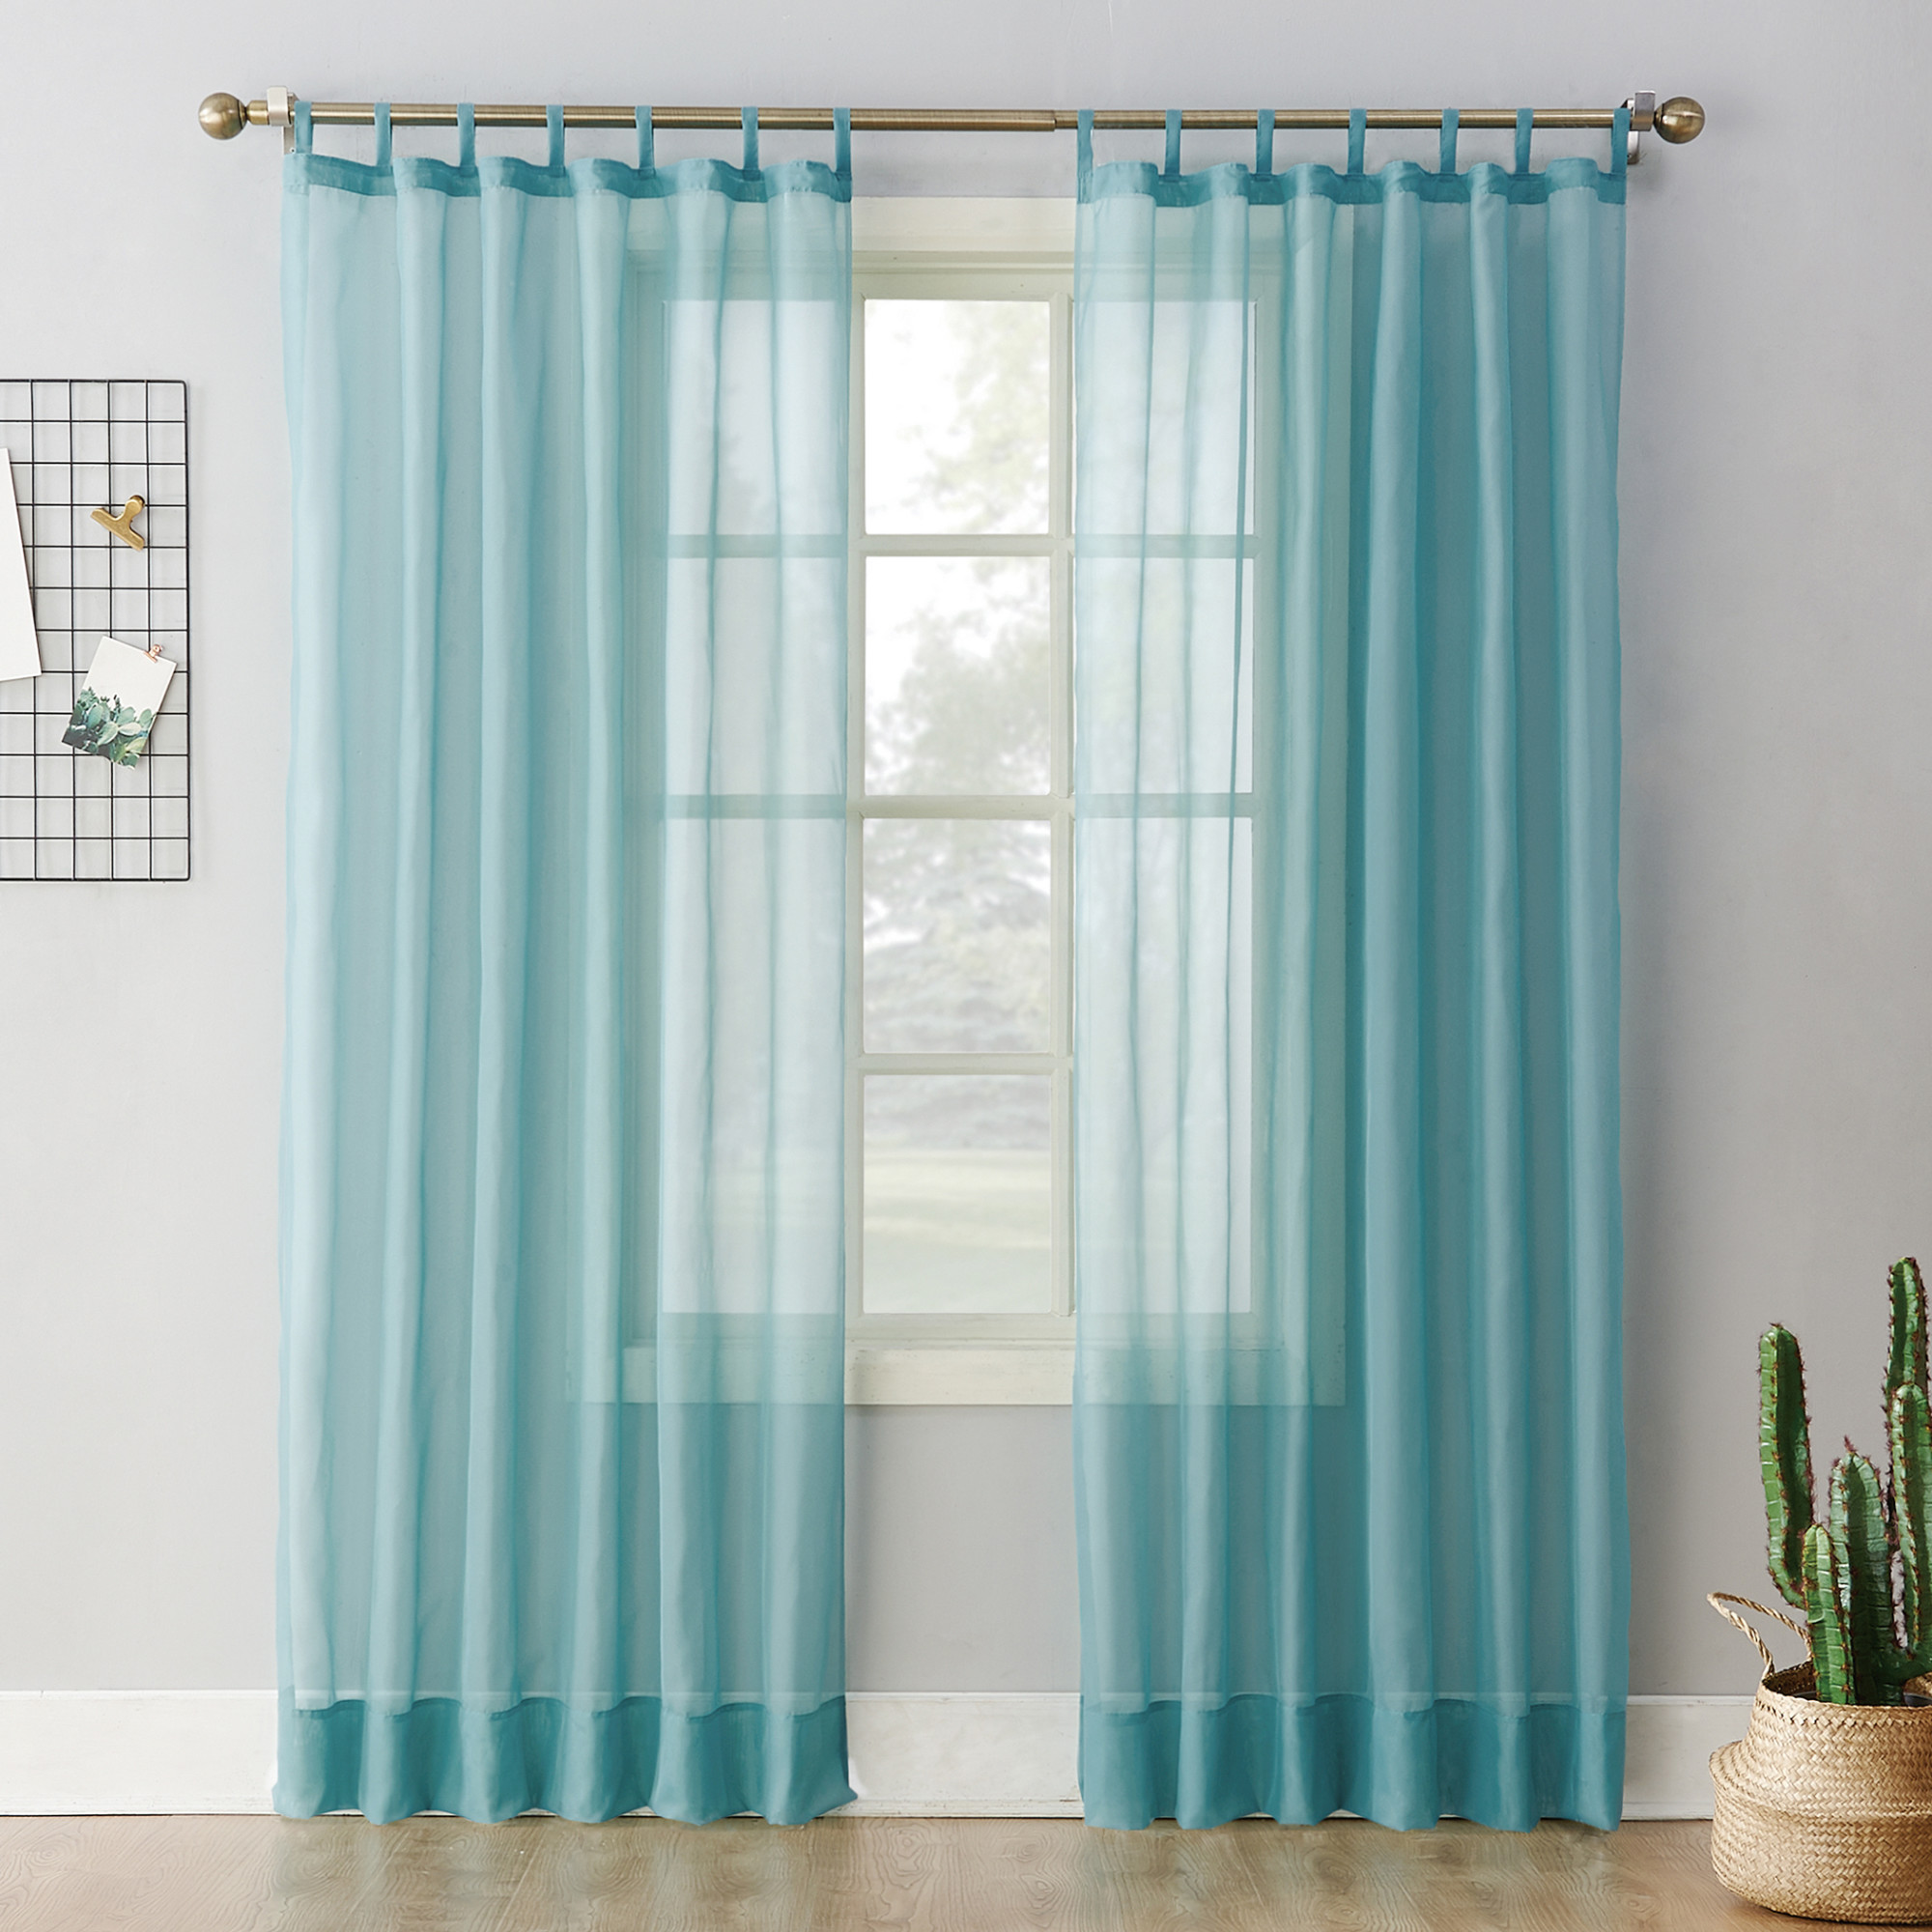 tab top sheer curtains. 918 Emily Sheer Voile Tab Top Curtain Panel Curtains I